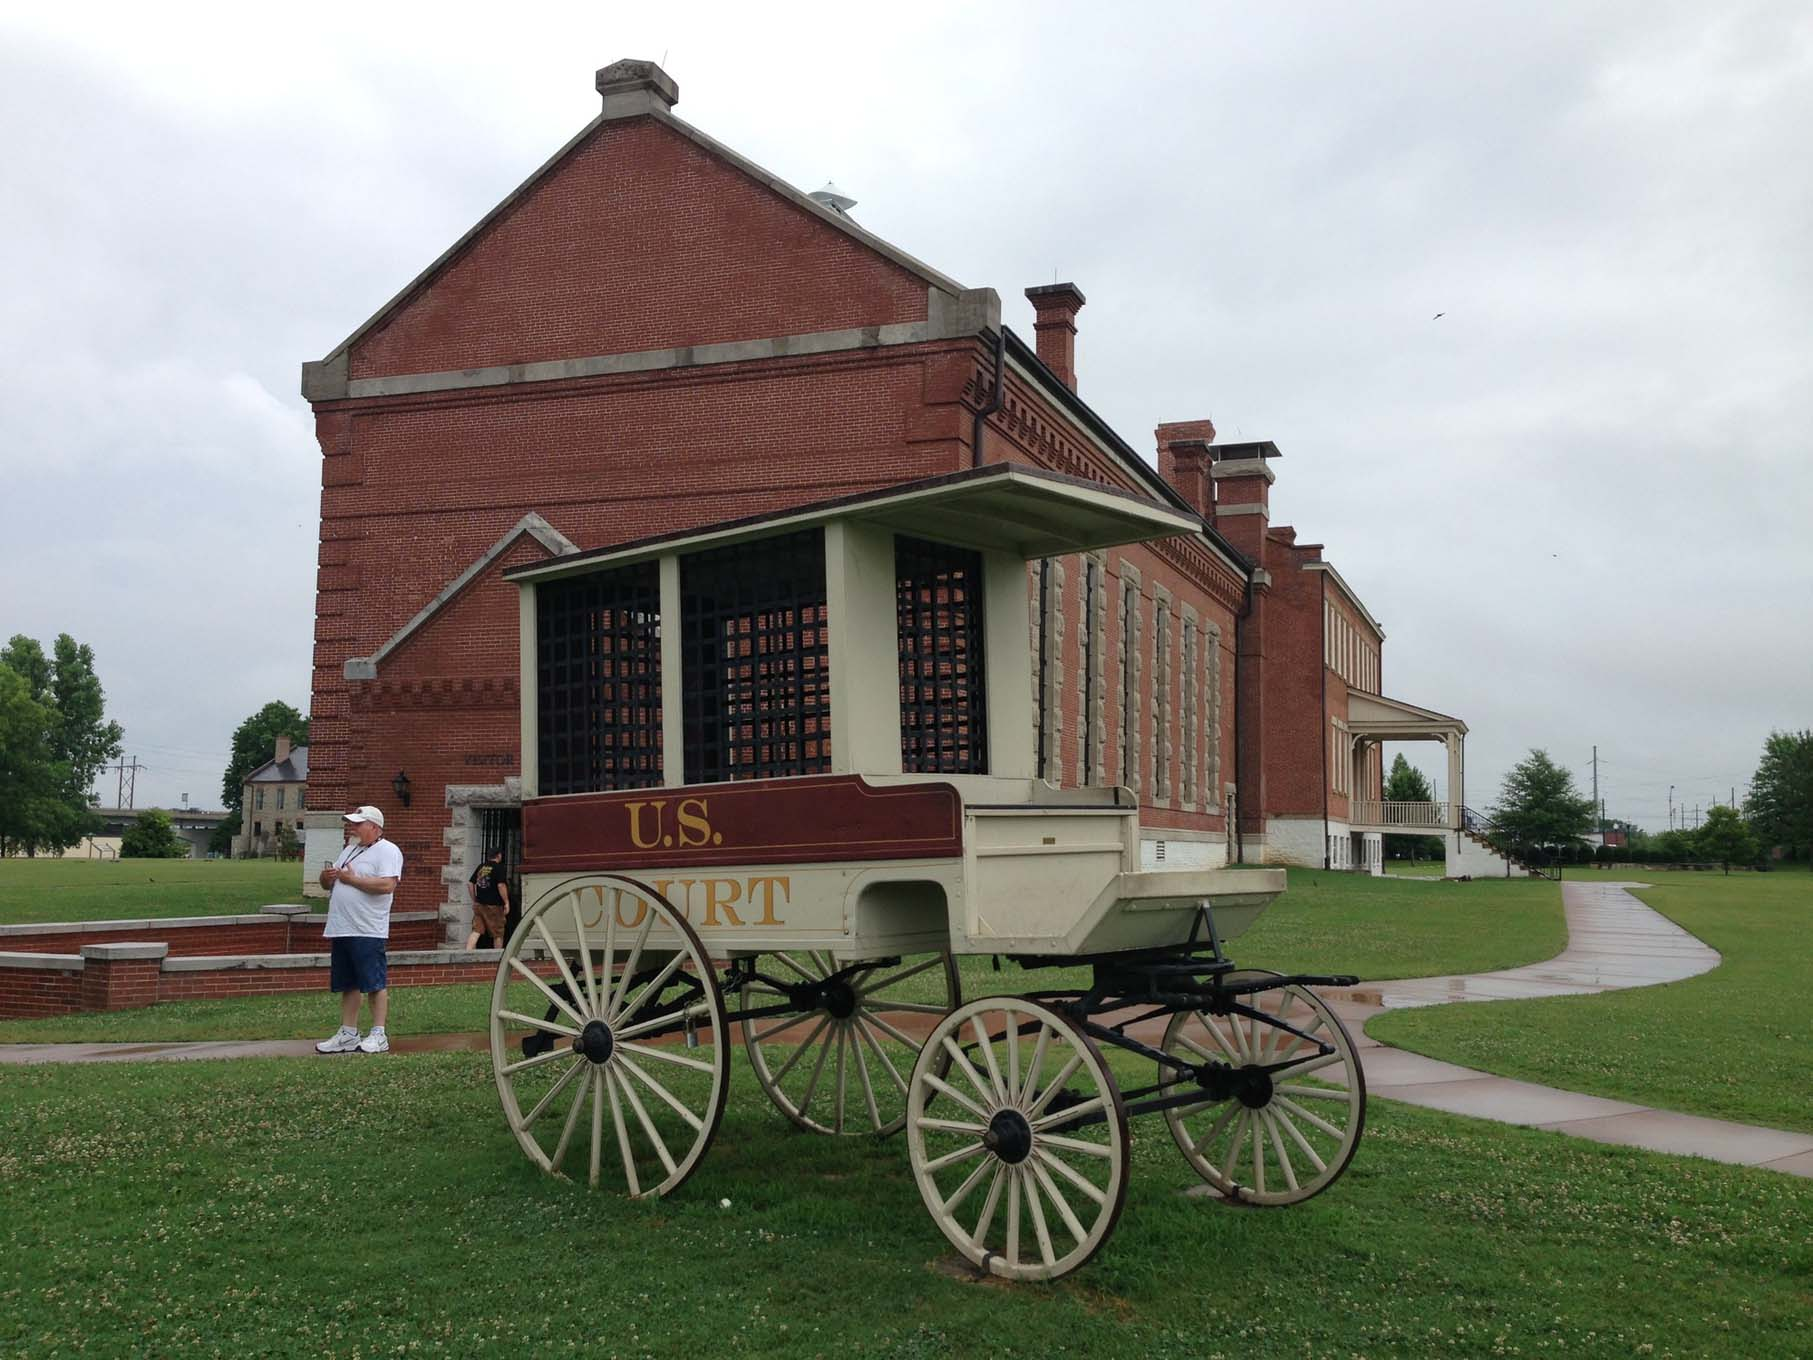 We always like to have a little history lesson on the tours. Tuesday morning we visited Historic Fort Smith in Arkansas. Fort Smith was one of the earliest outposts during the expansion of the United States westward.